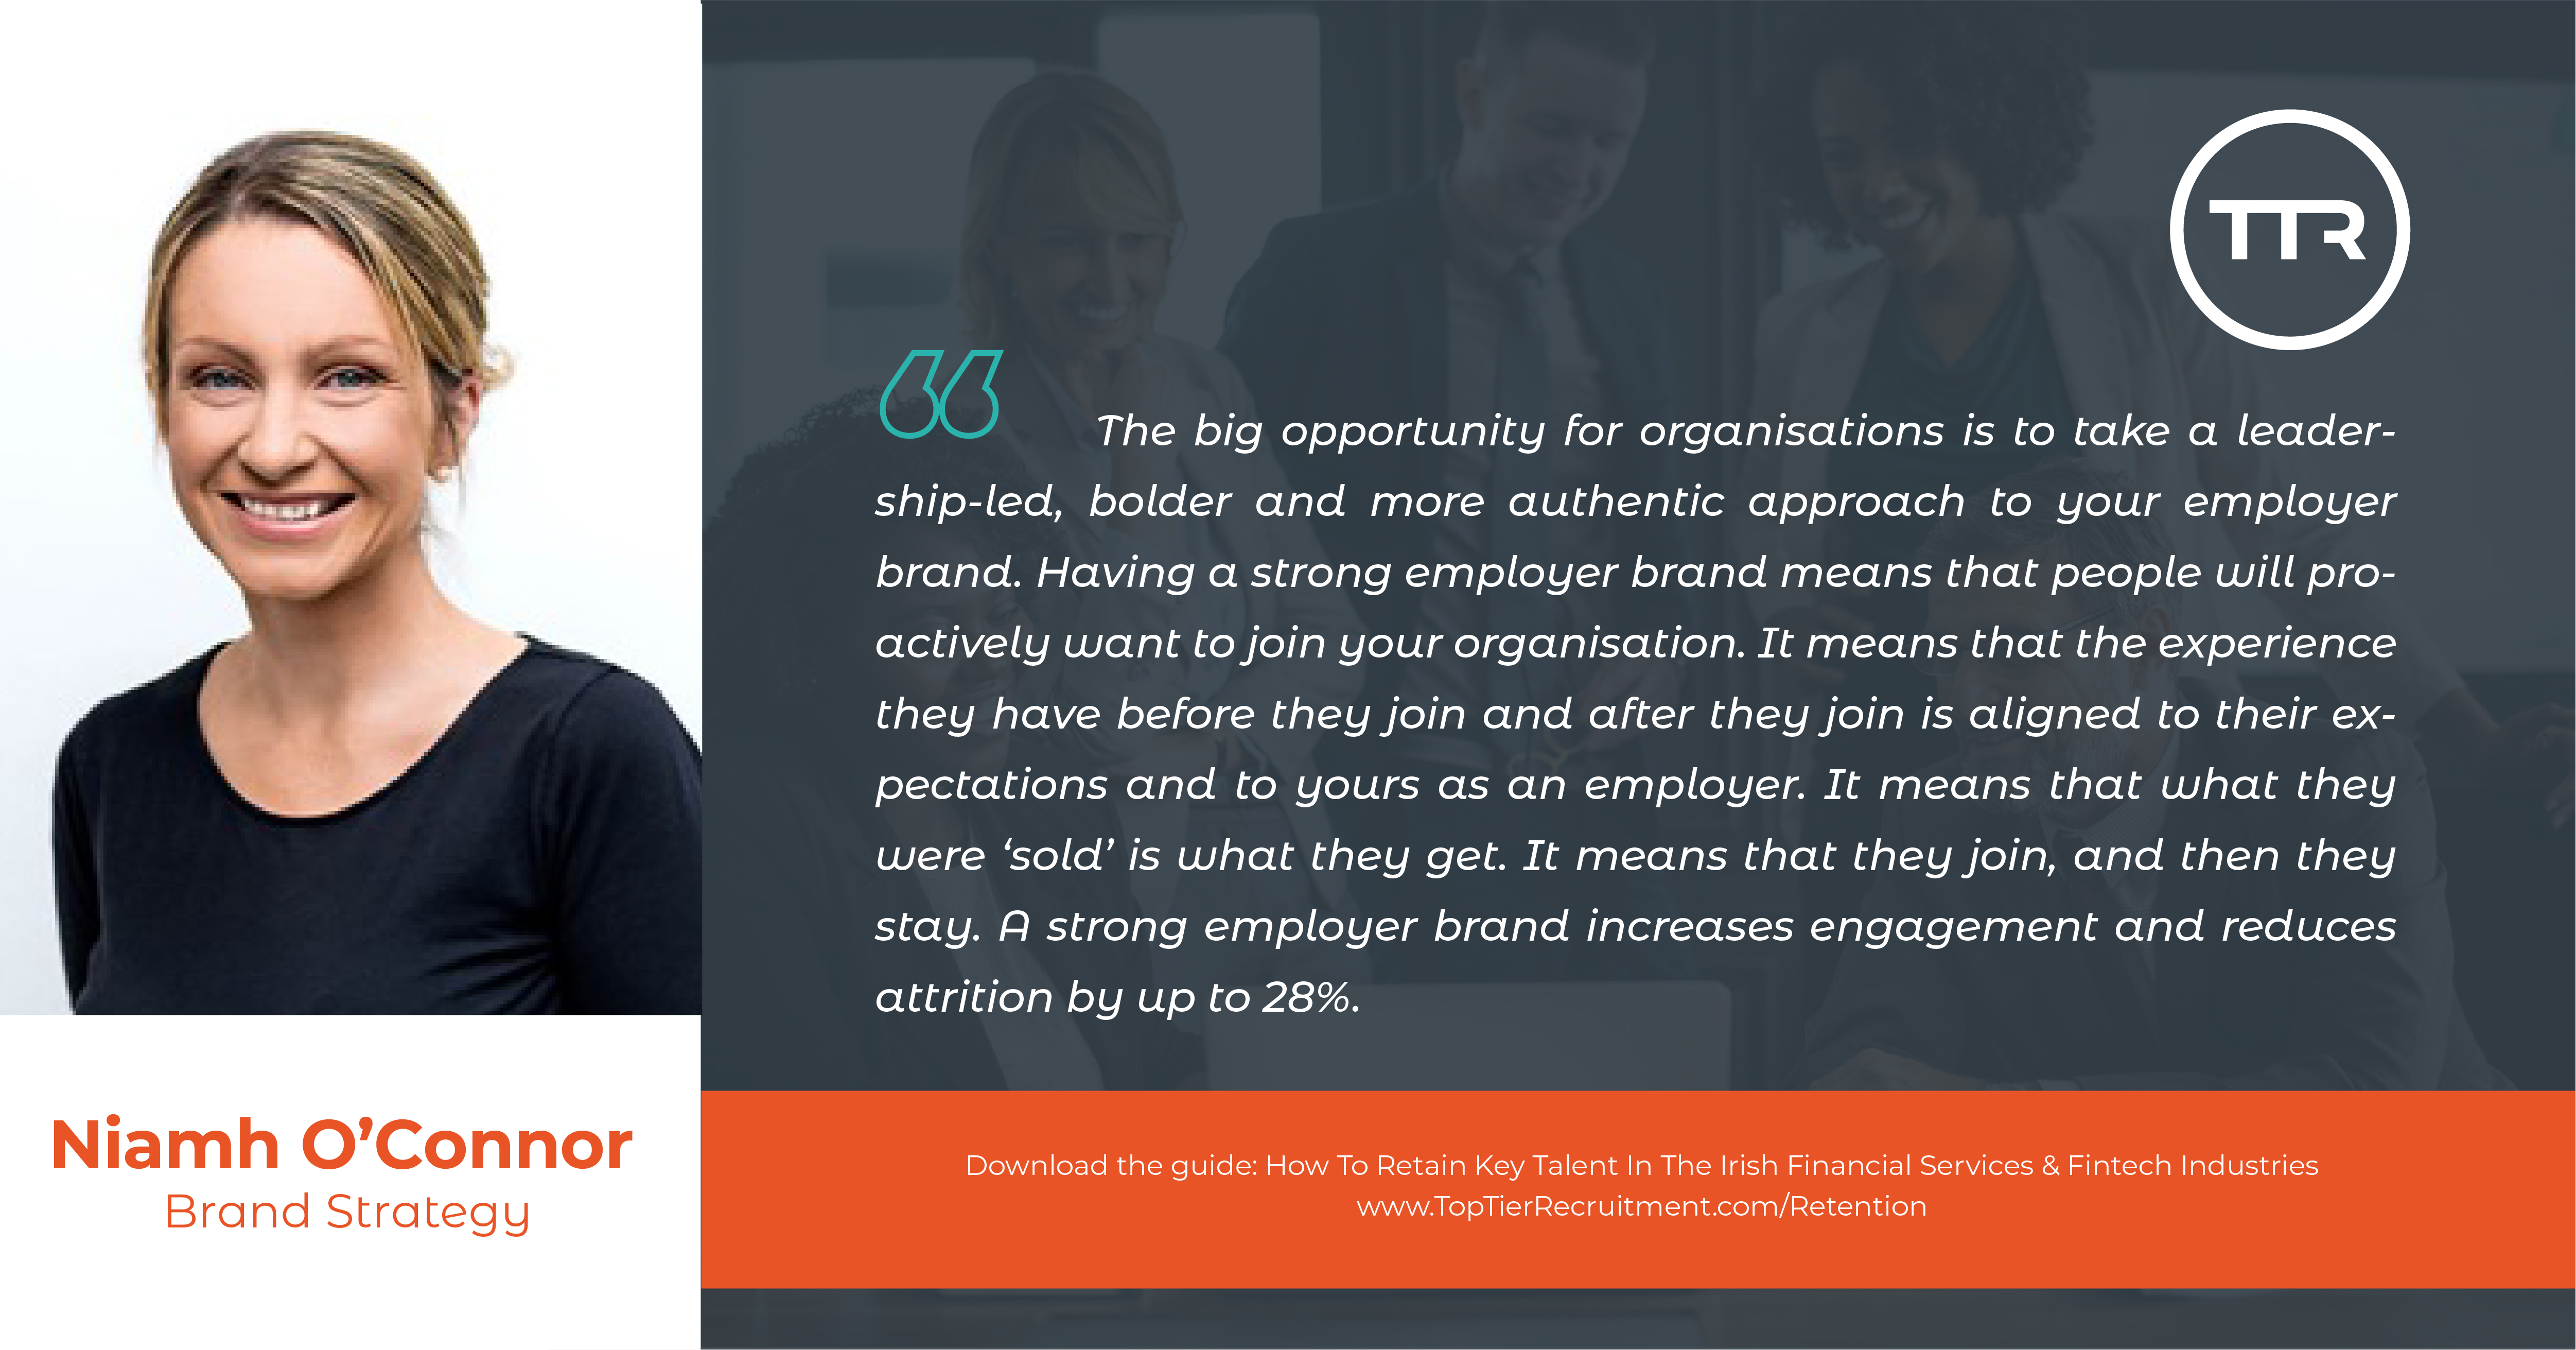 Niamh O'Connor employer branding quote